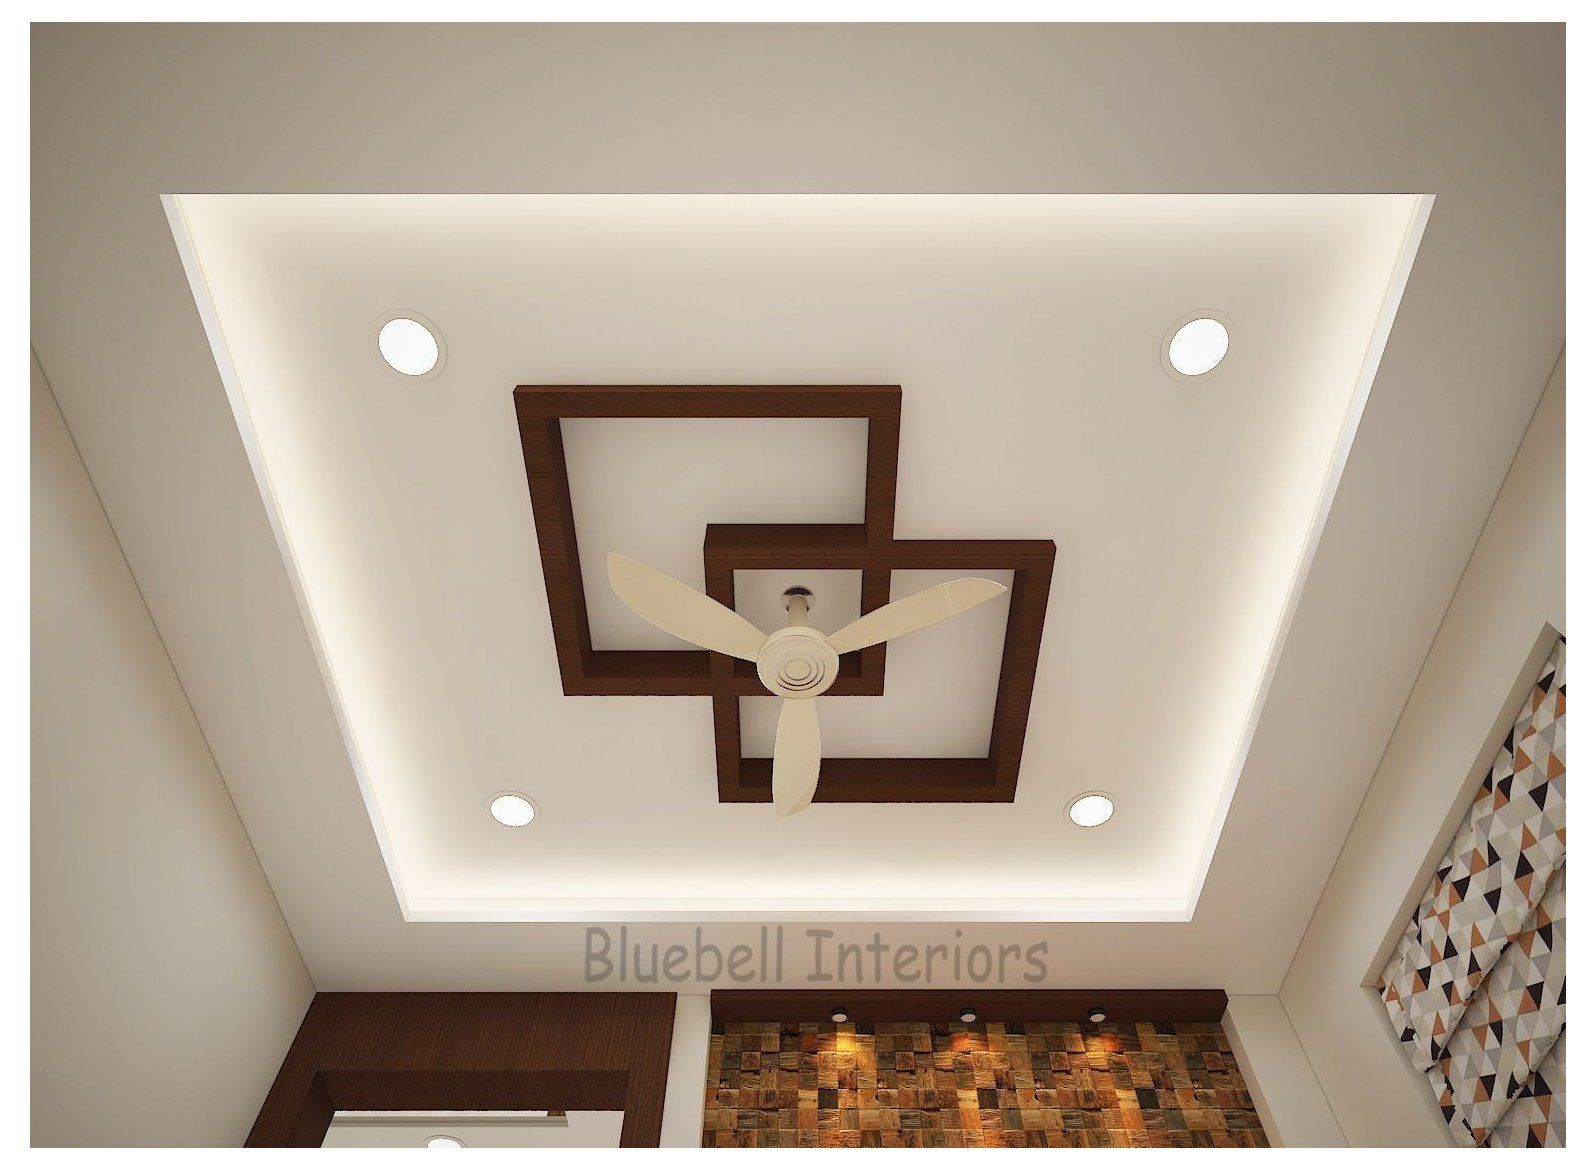 When the summer heat strikes, breaking out a fan is one of the few things you can do to keep cool. 100 Bedroom Ceiling Design Ideas In 2021 Ceiling Design Ceiling Design Bedroom Bedroom False Ceiling Design